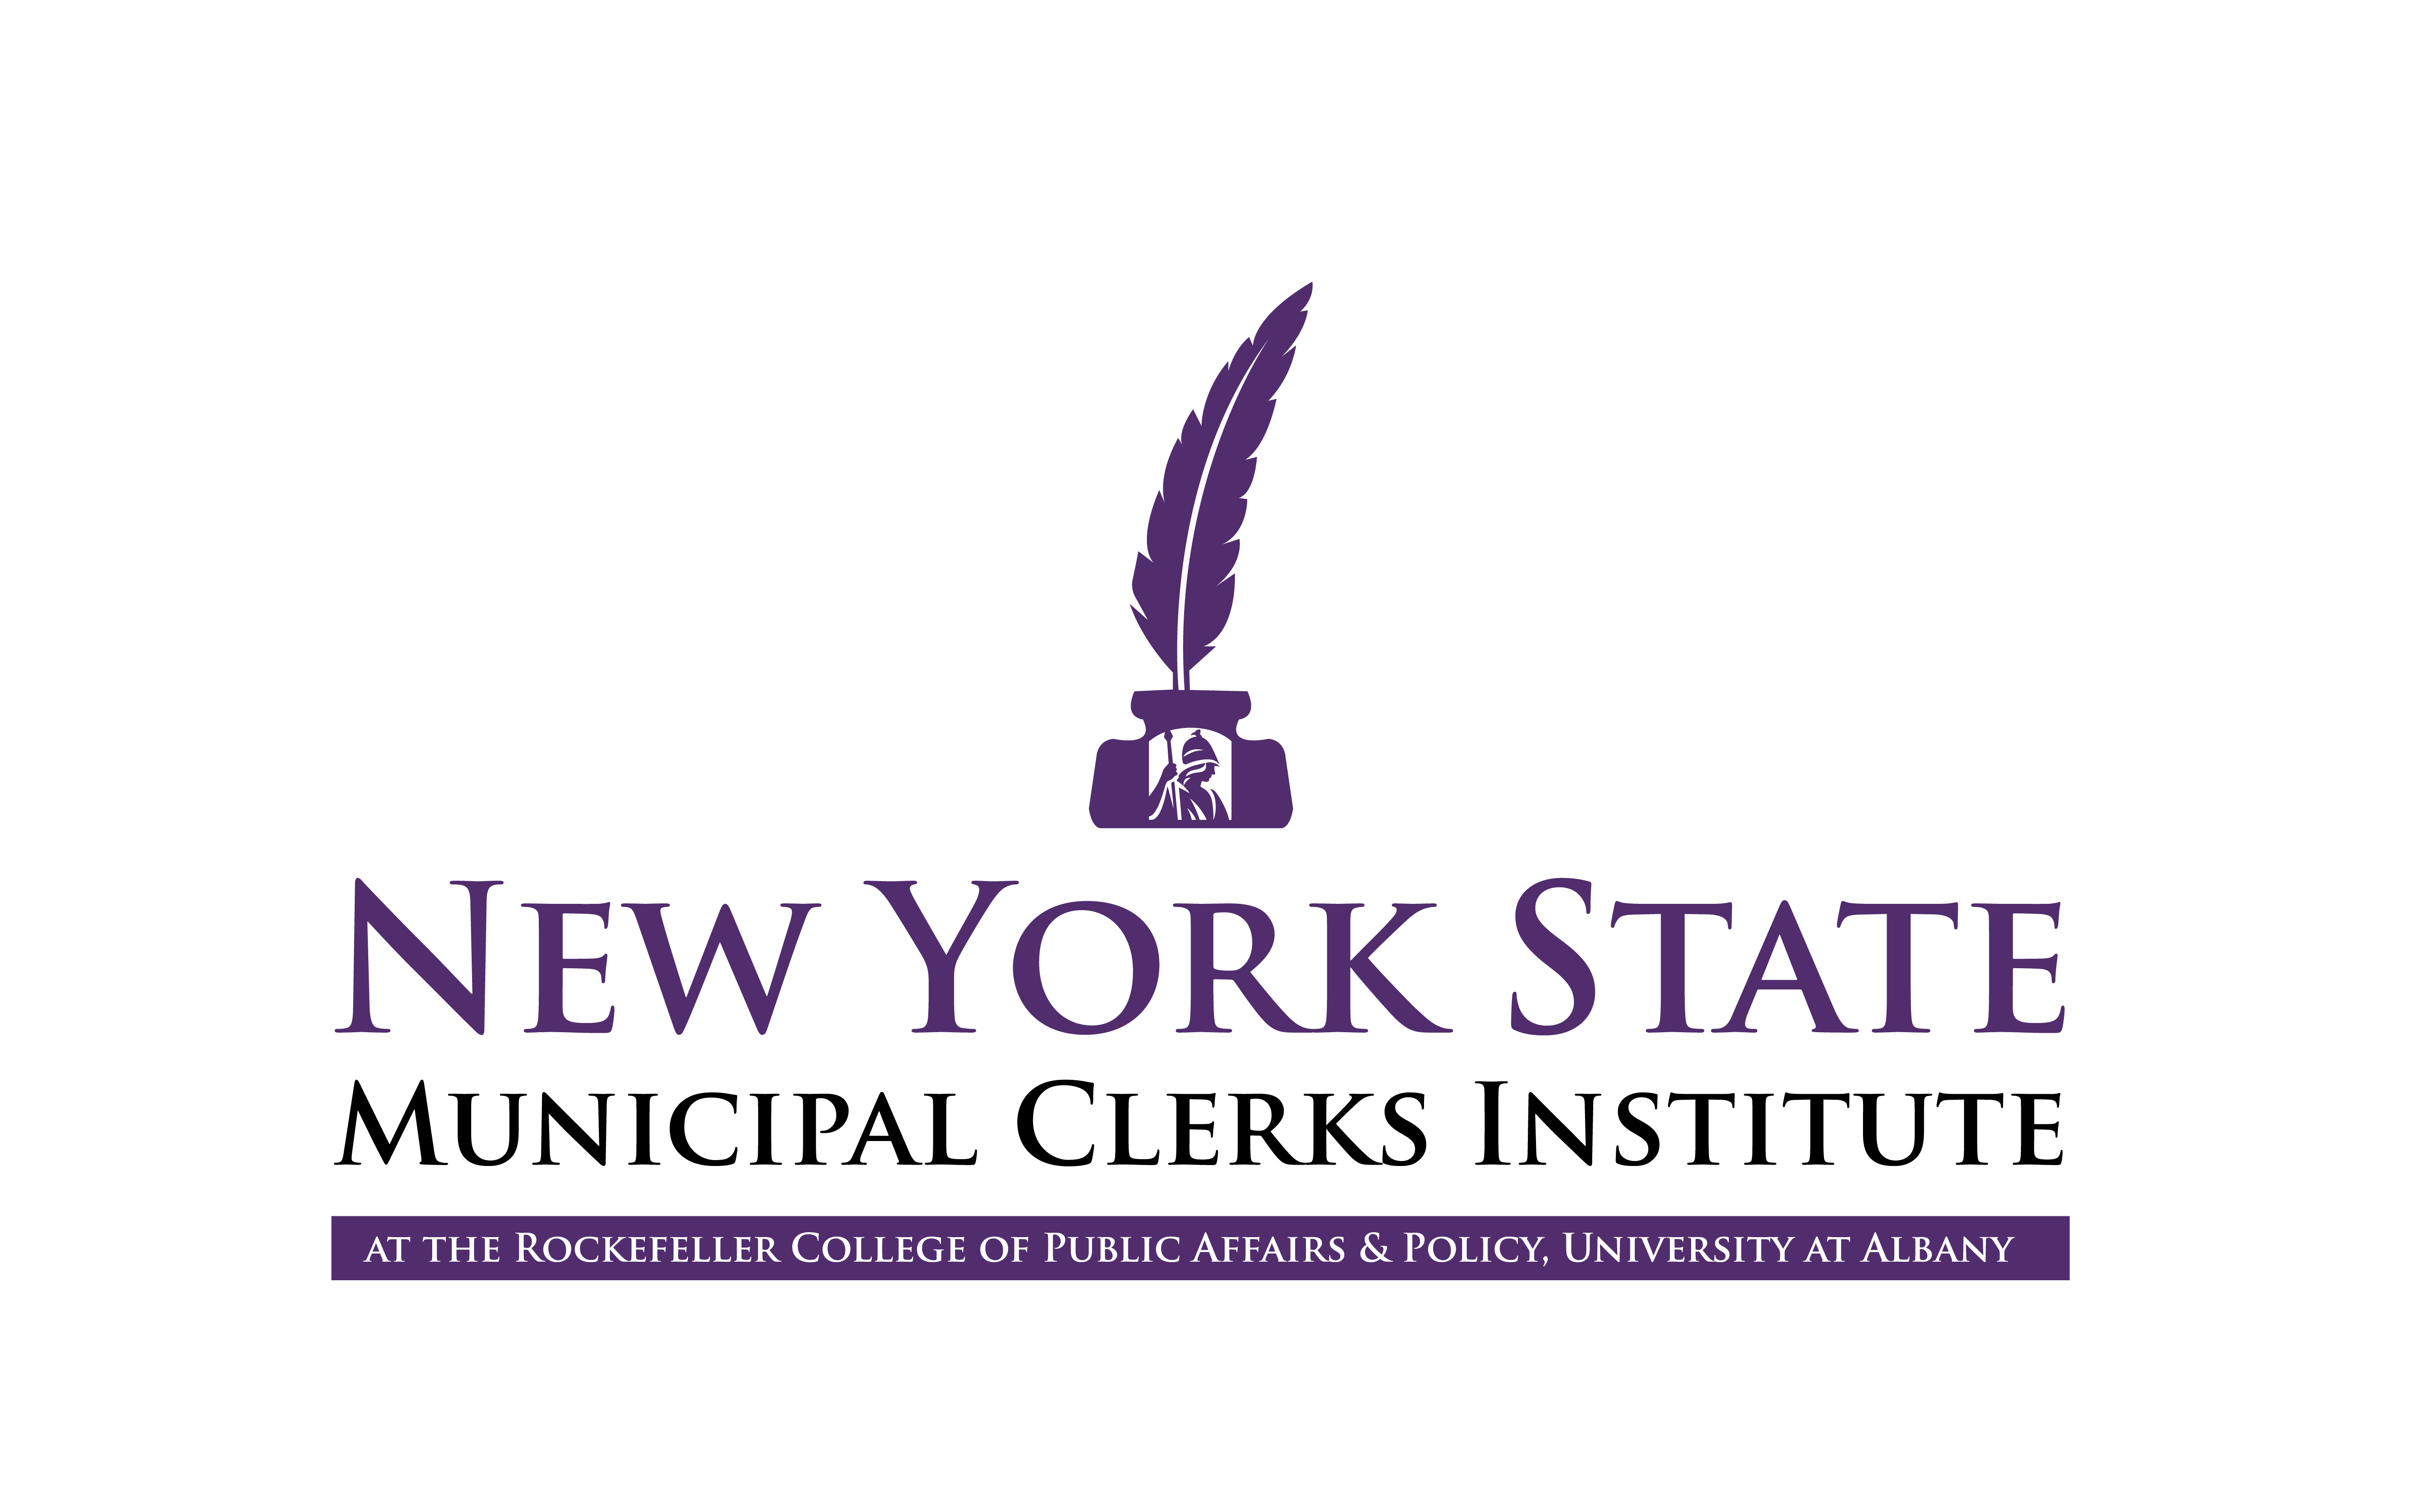 Ualbany Academic Calendar Spring 2021 Rockefeller College To Host Clerks Courses Online | University at